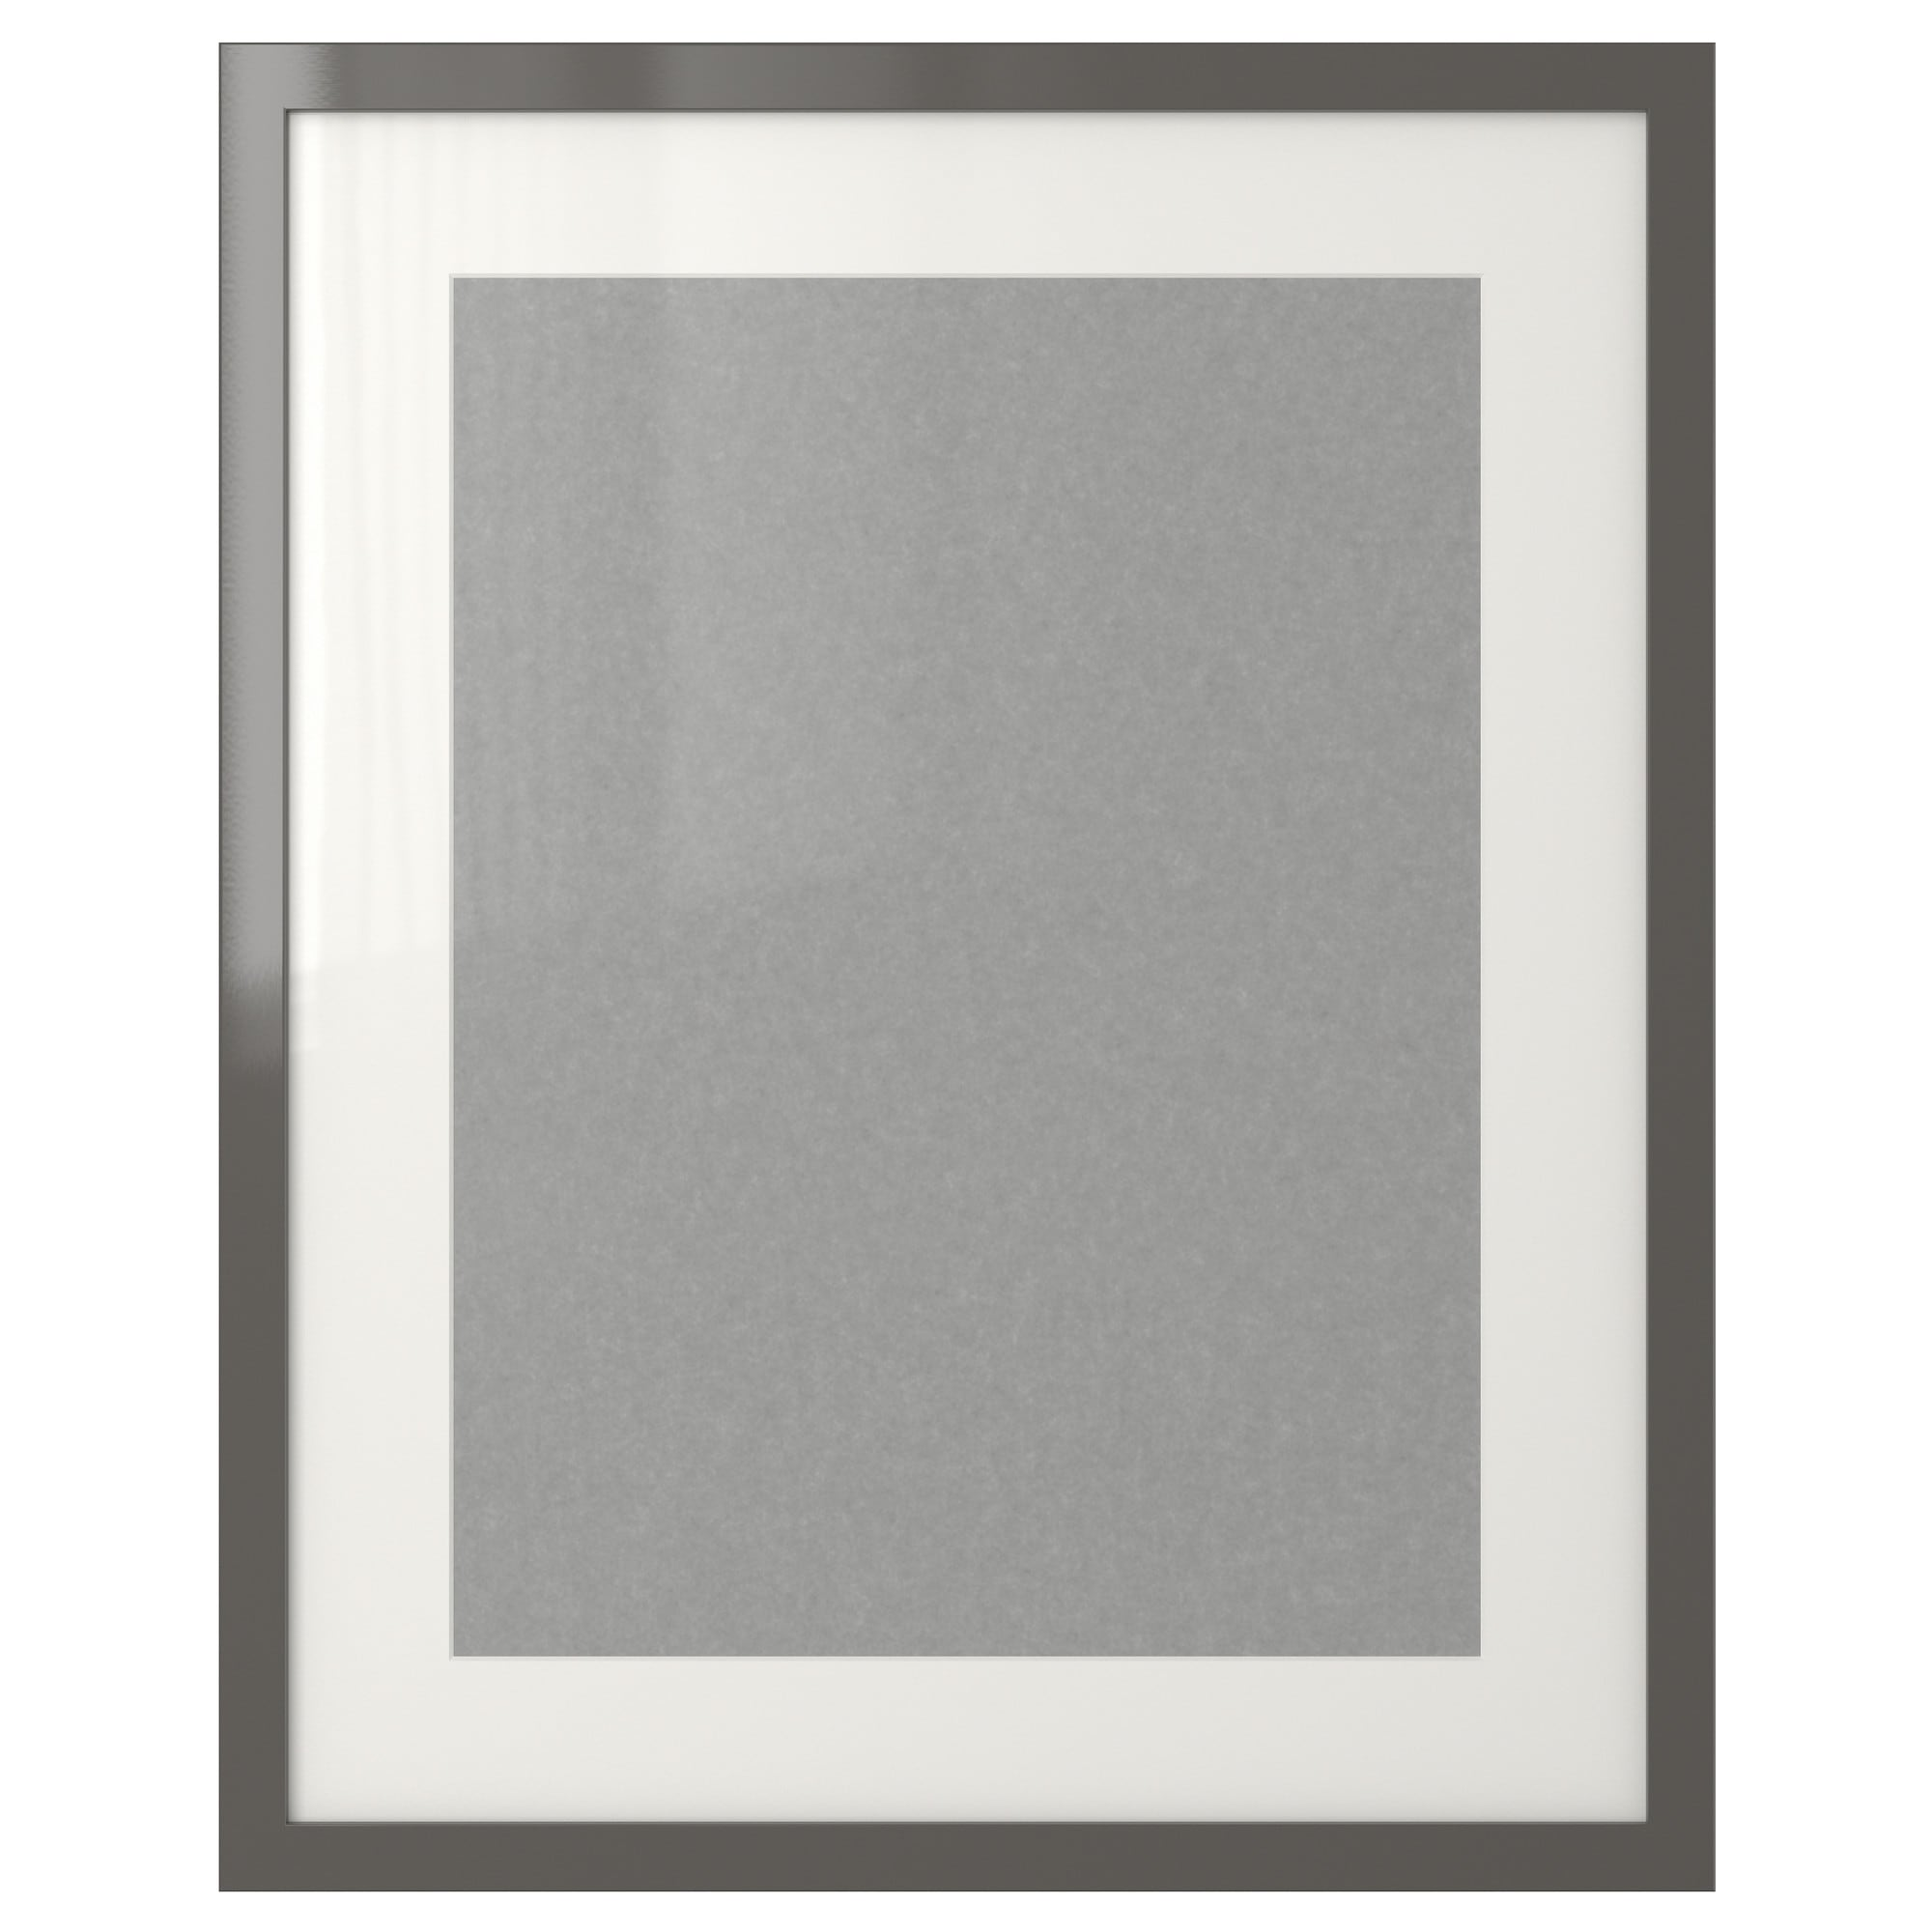 ribba frame high gloss gray picture without mat width 16 picture